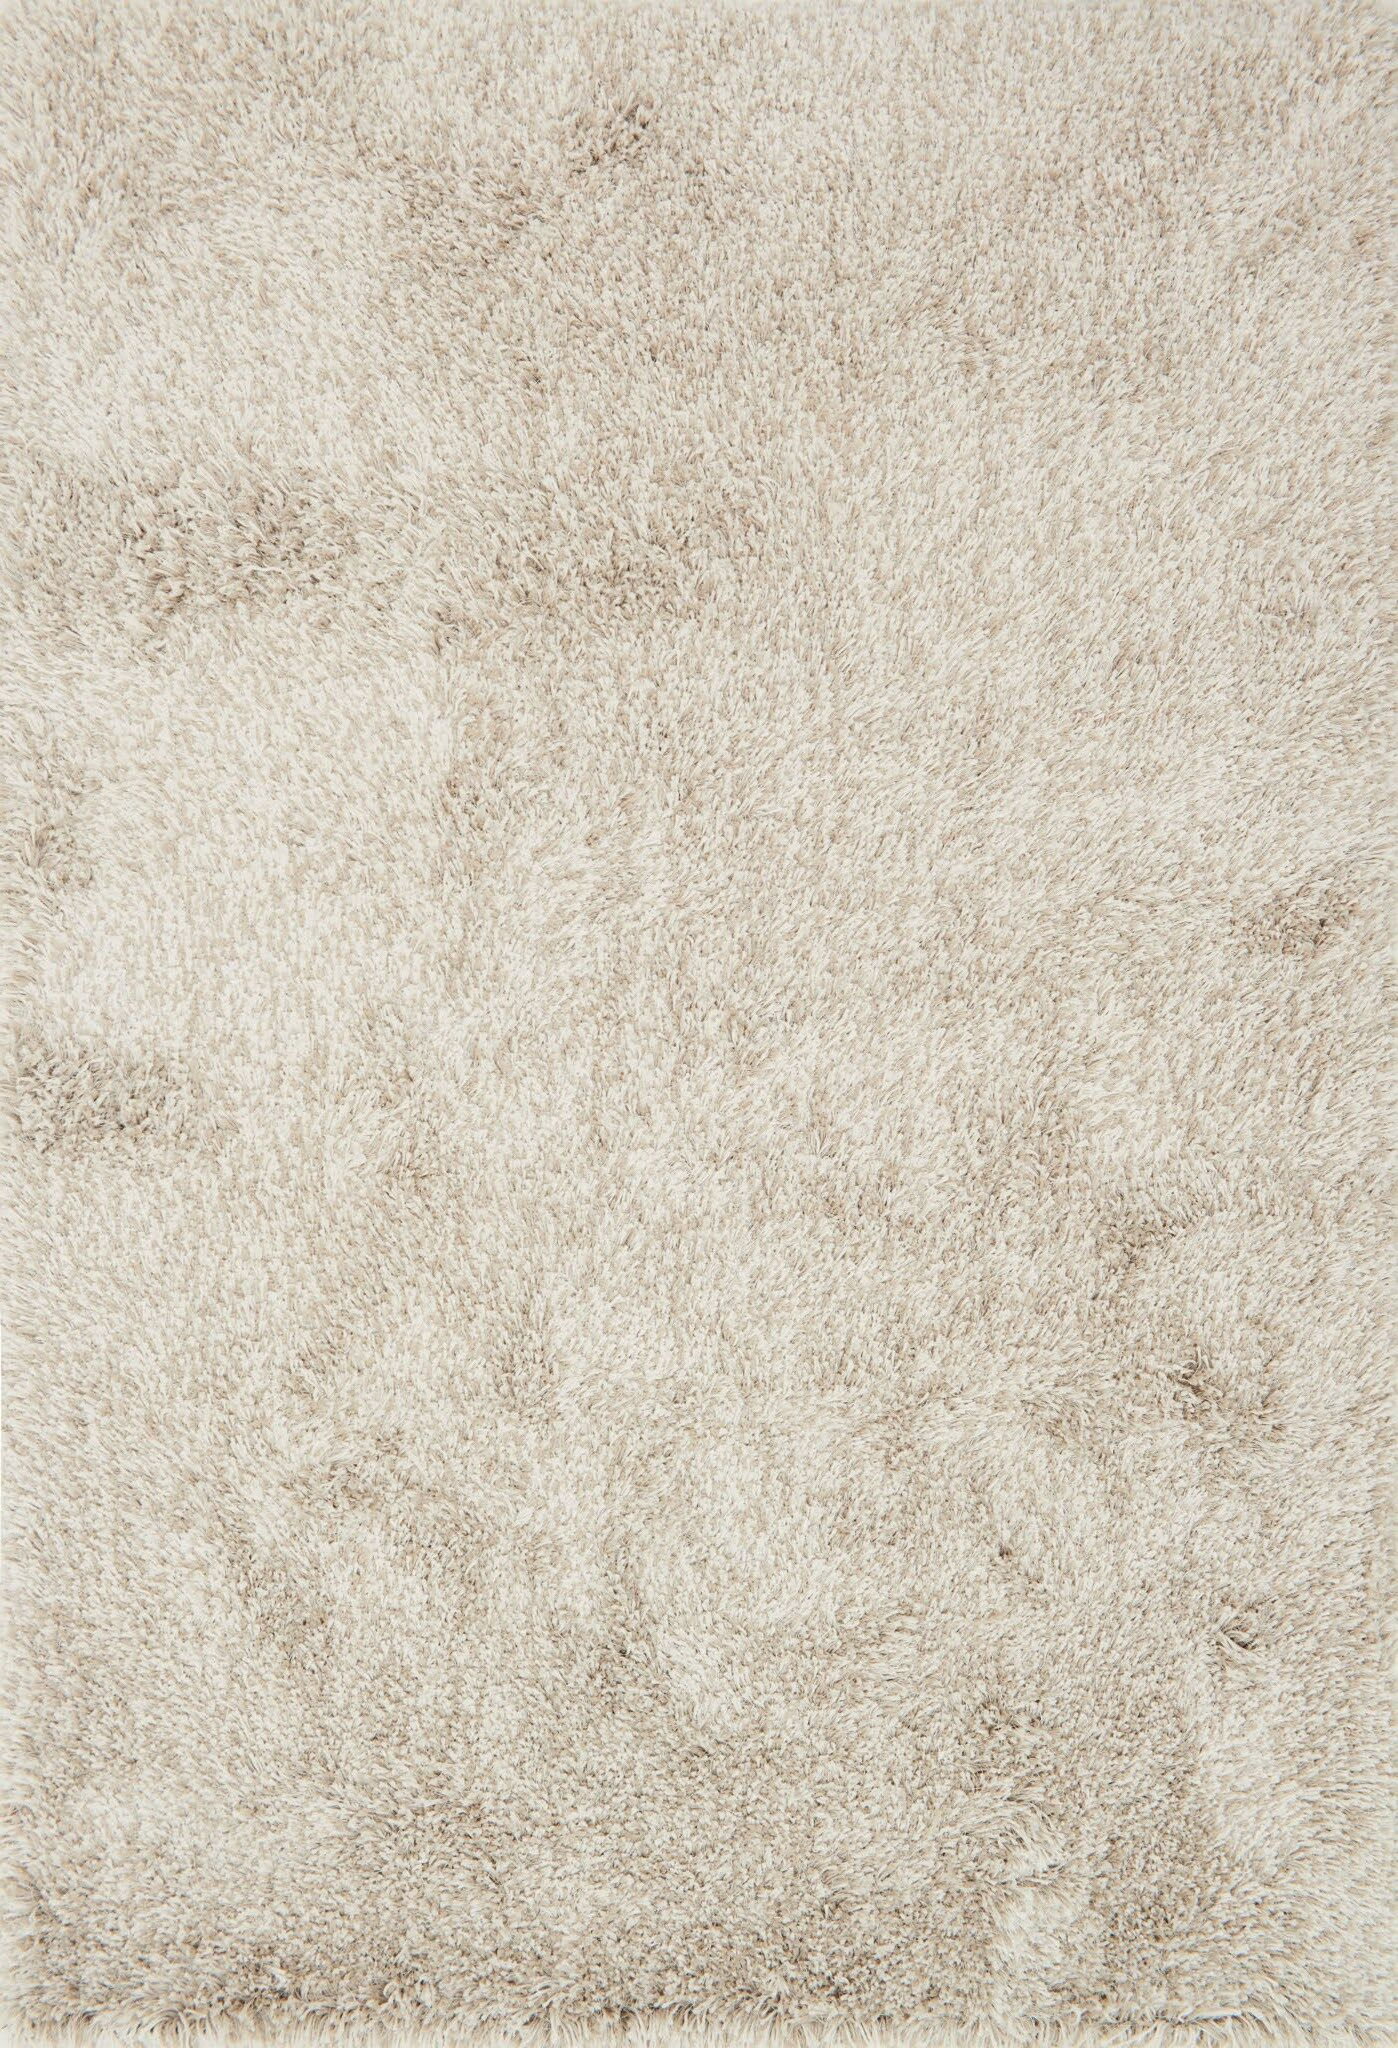 Clein Beige Area Rug Rug Size: Rectangle 5' x 7'6